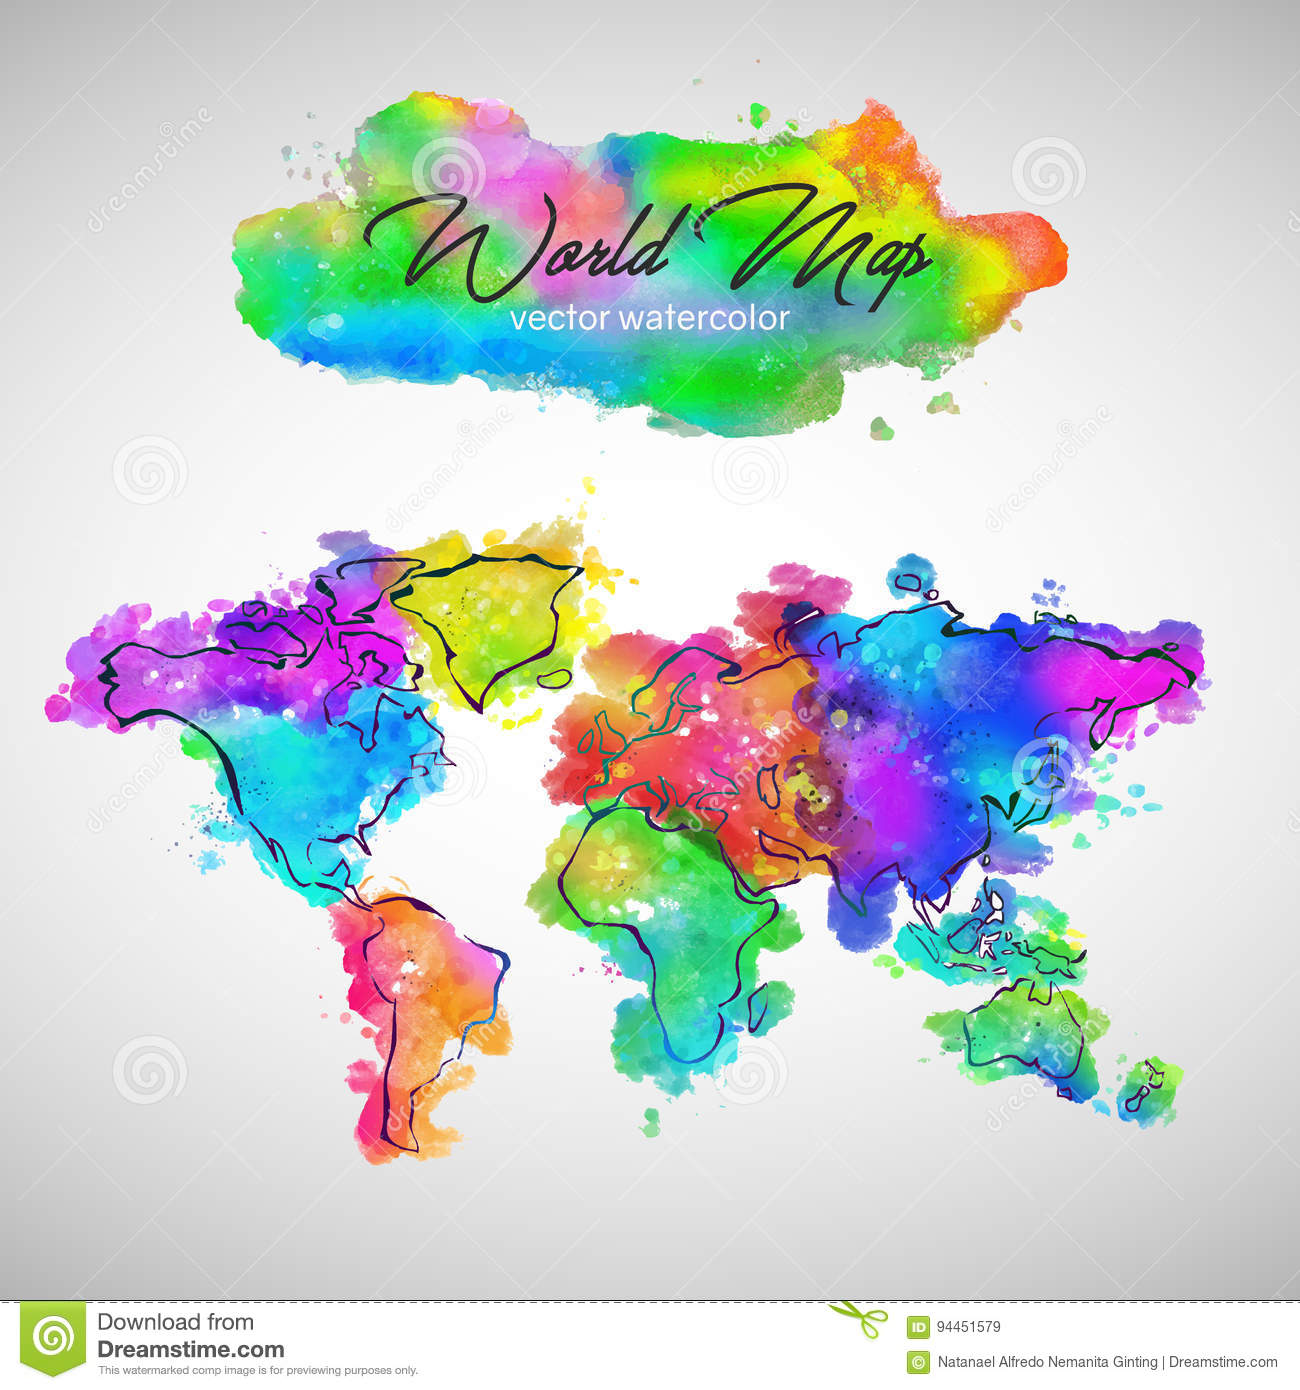 World map watercolor paint vector stock vector illustration of download world map watercolor paint vector stock vector illustration of artistic watercolour 94451579 gumiabroncs Images